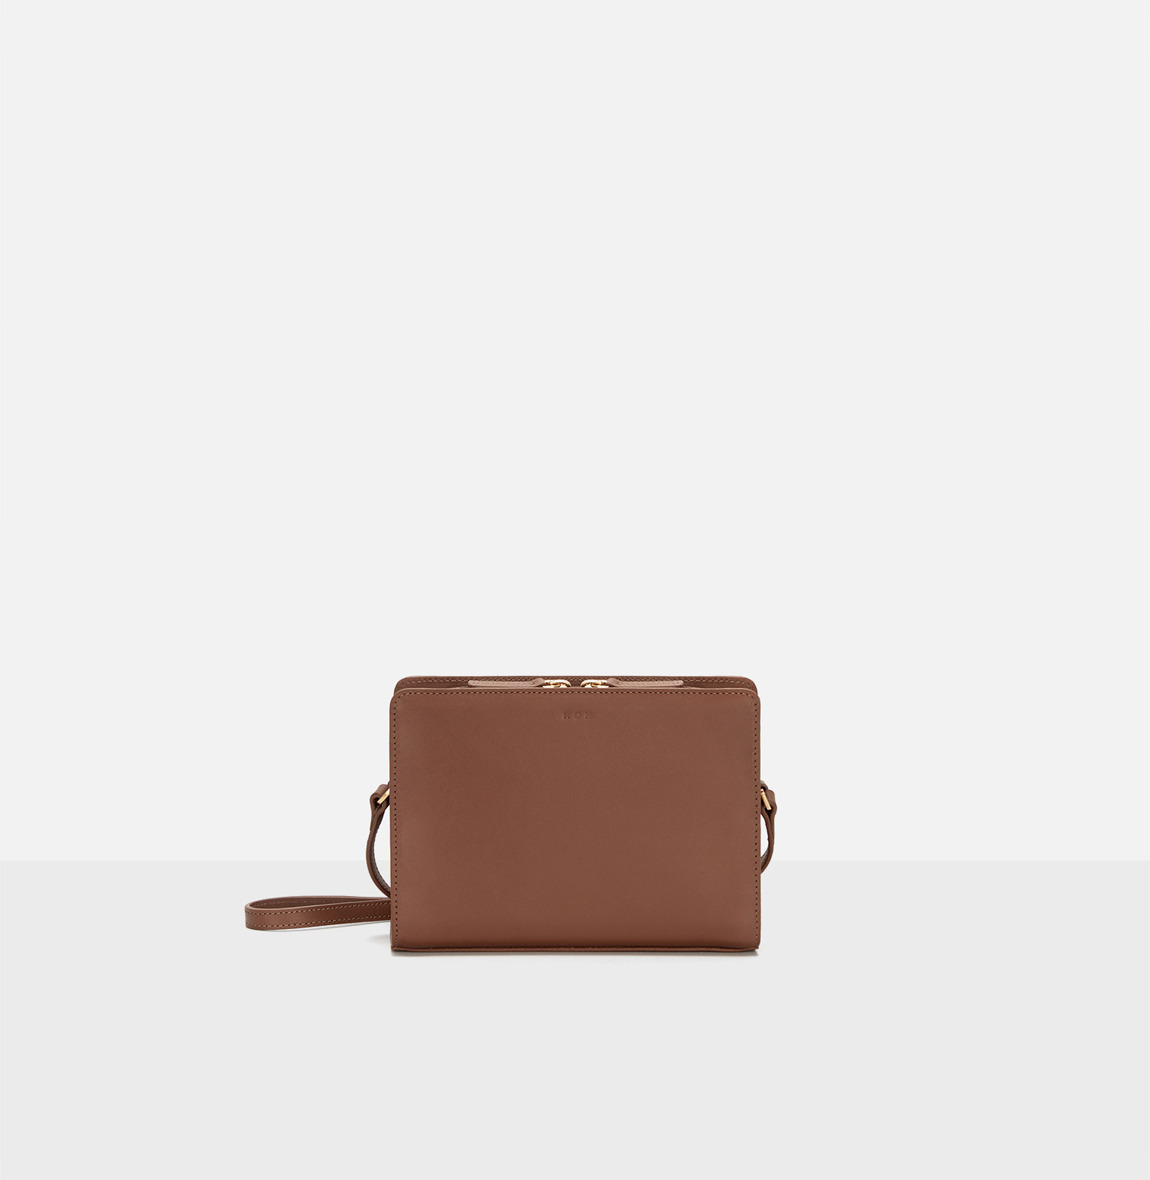 Square small shoulder bag Smoky Tan